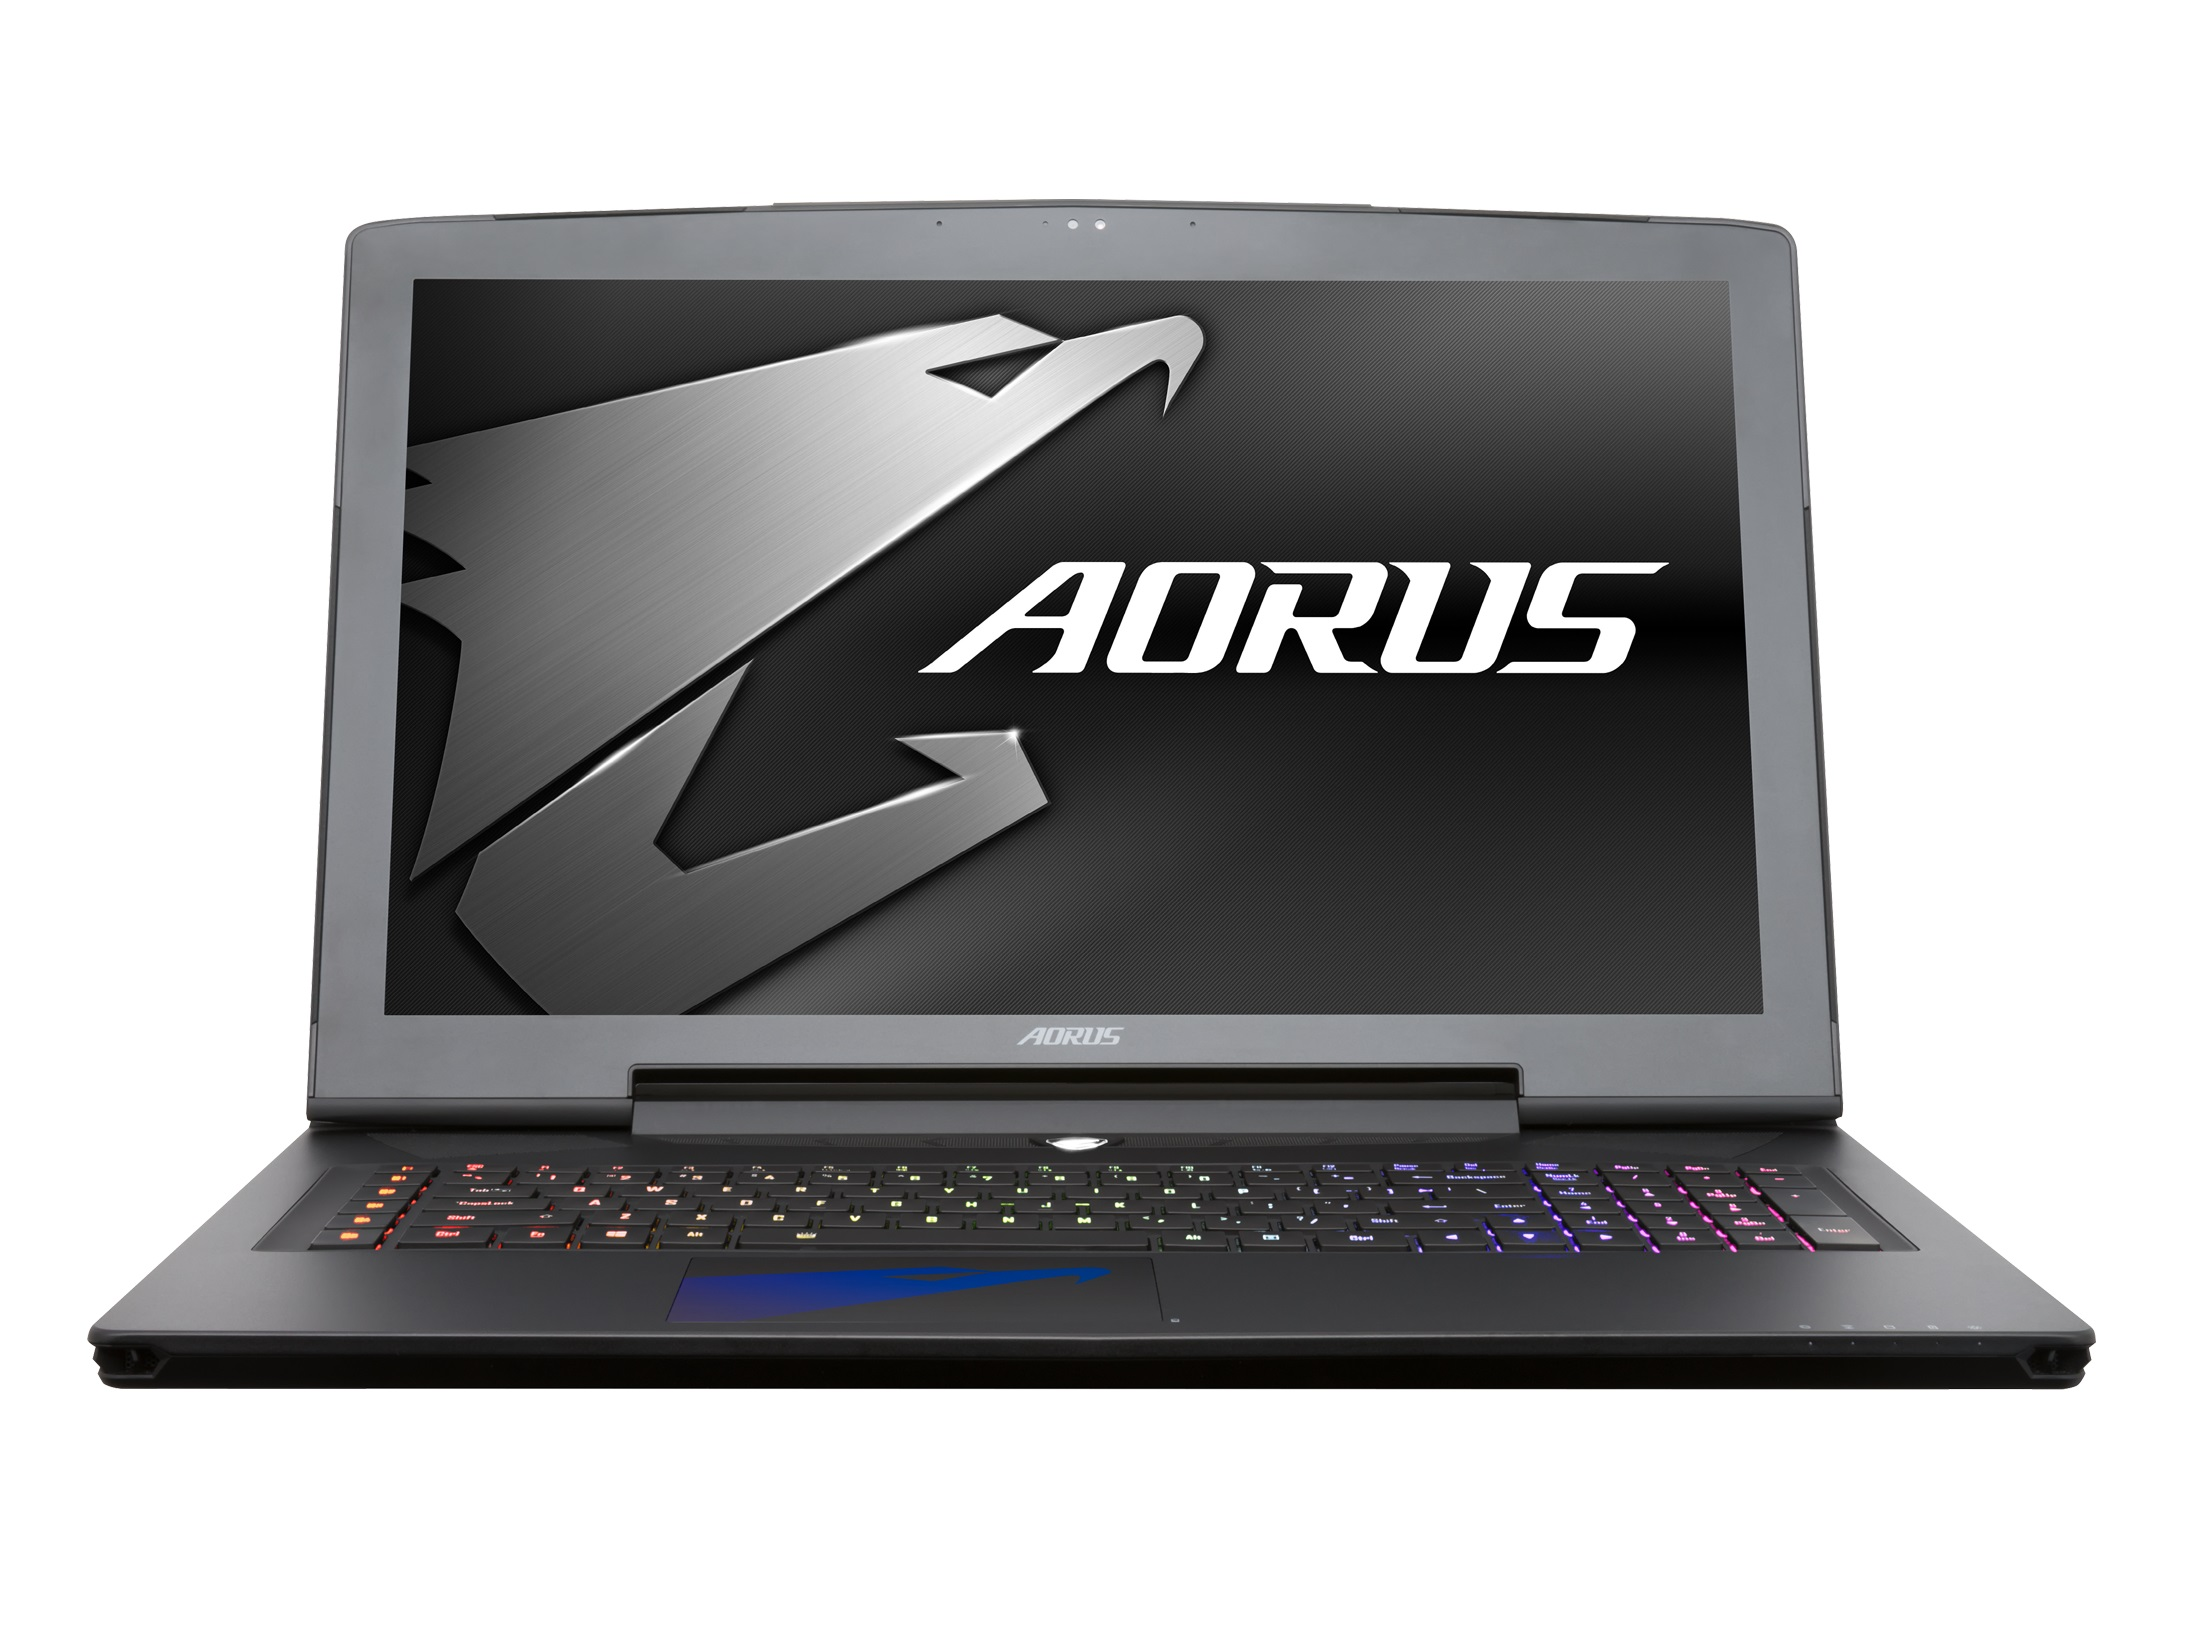 Gigabyte AORUS X7 v2 Atheros Killer LAN Download Driver